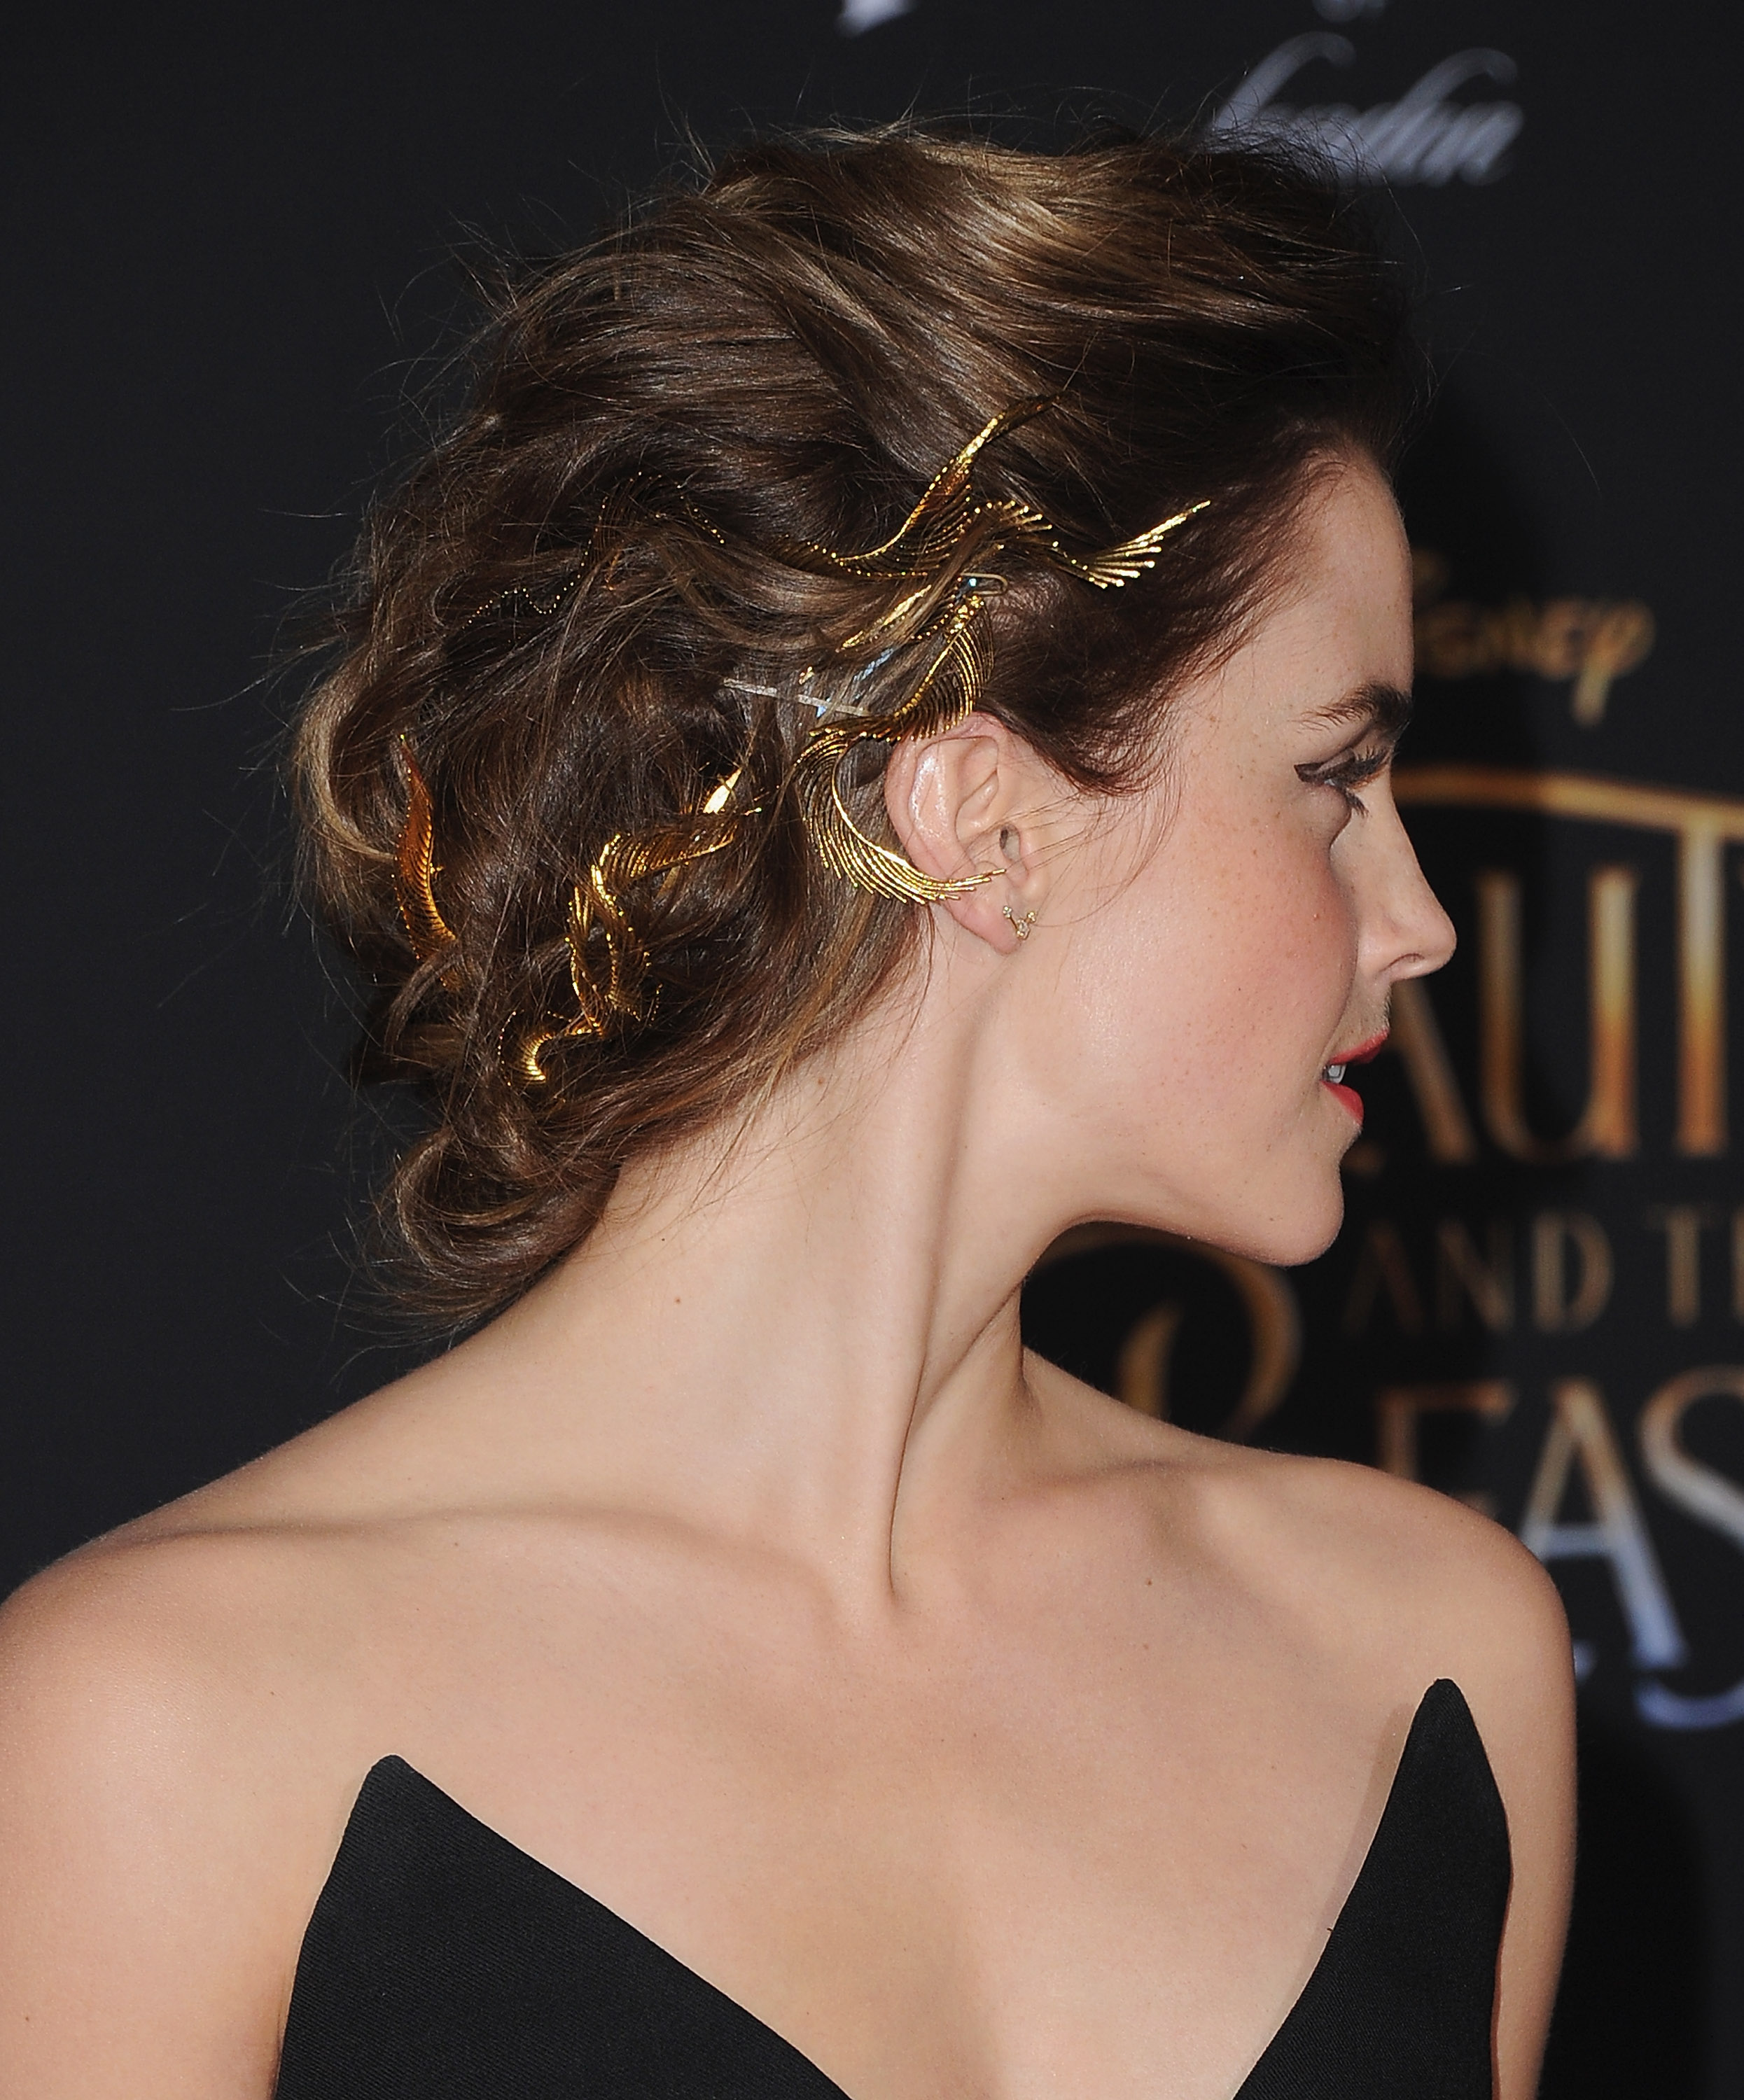 Emma Watson goes for the gold with a hair accessory styled ...